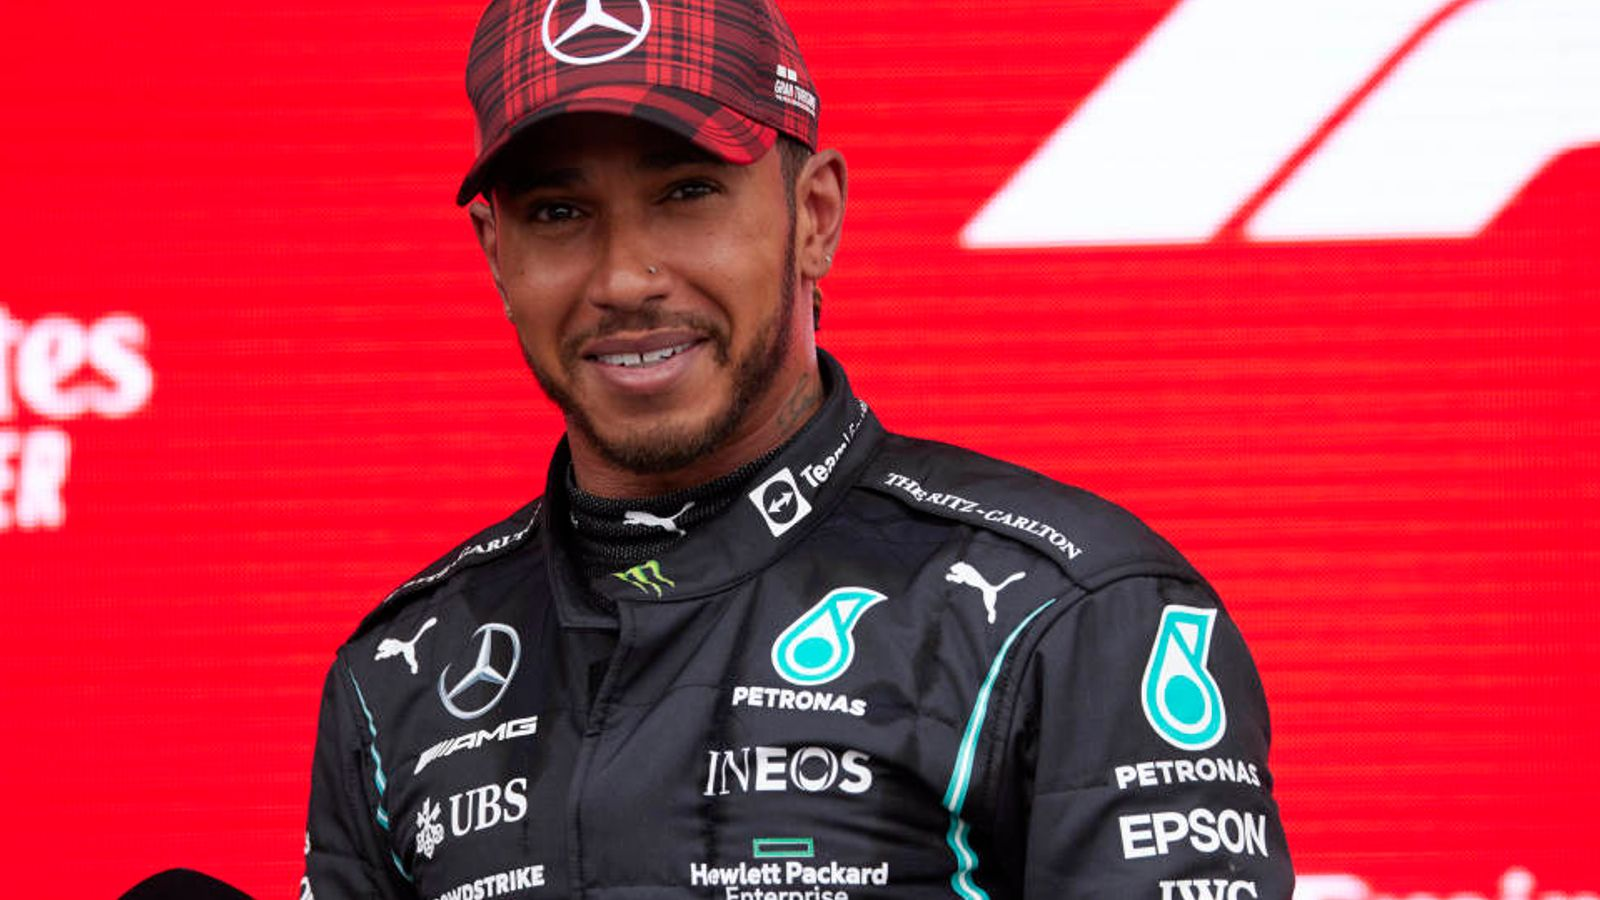 Lewis Hamilton pleased with French GP front row but knows Max Verstappen won't be easy to beat